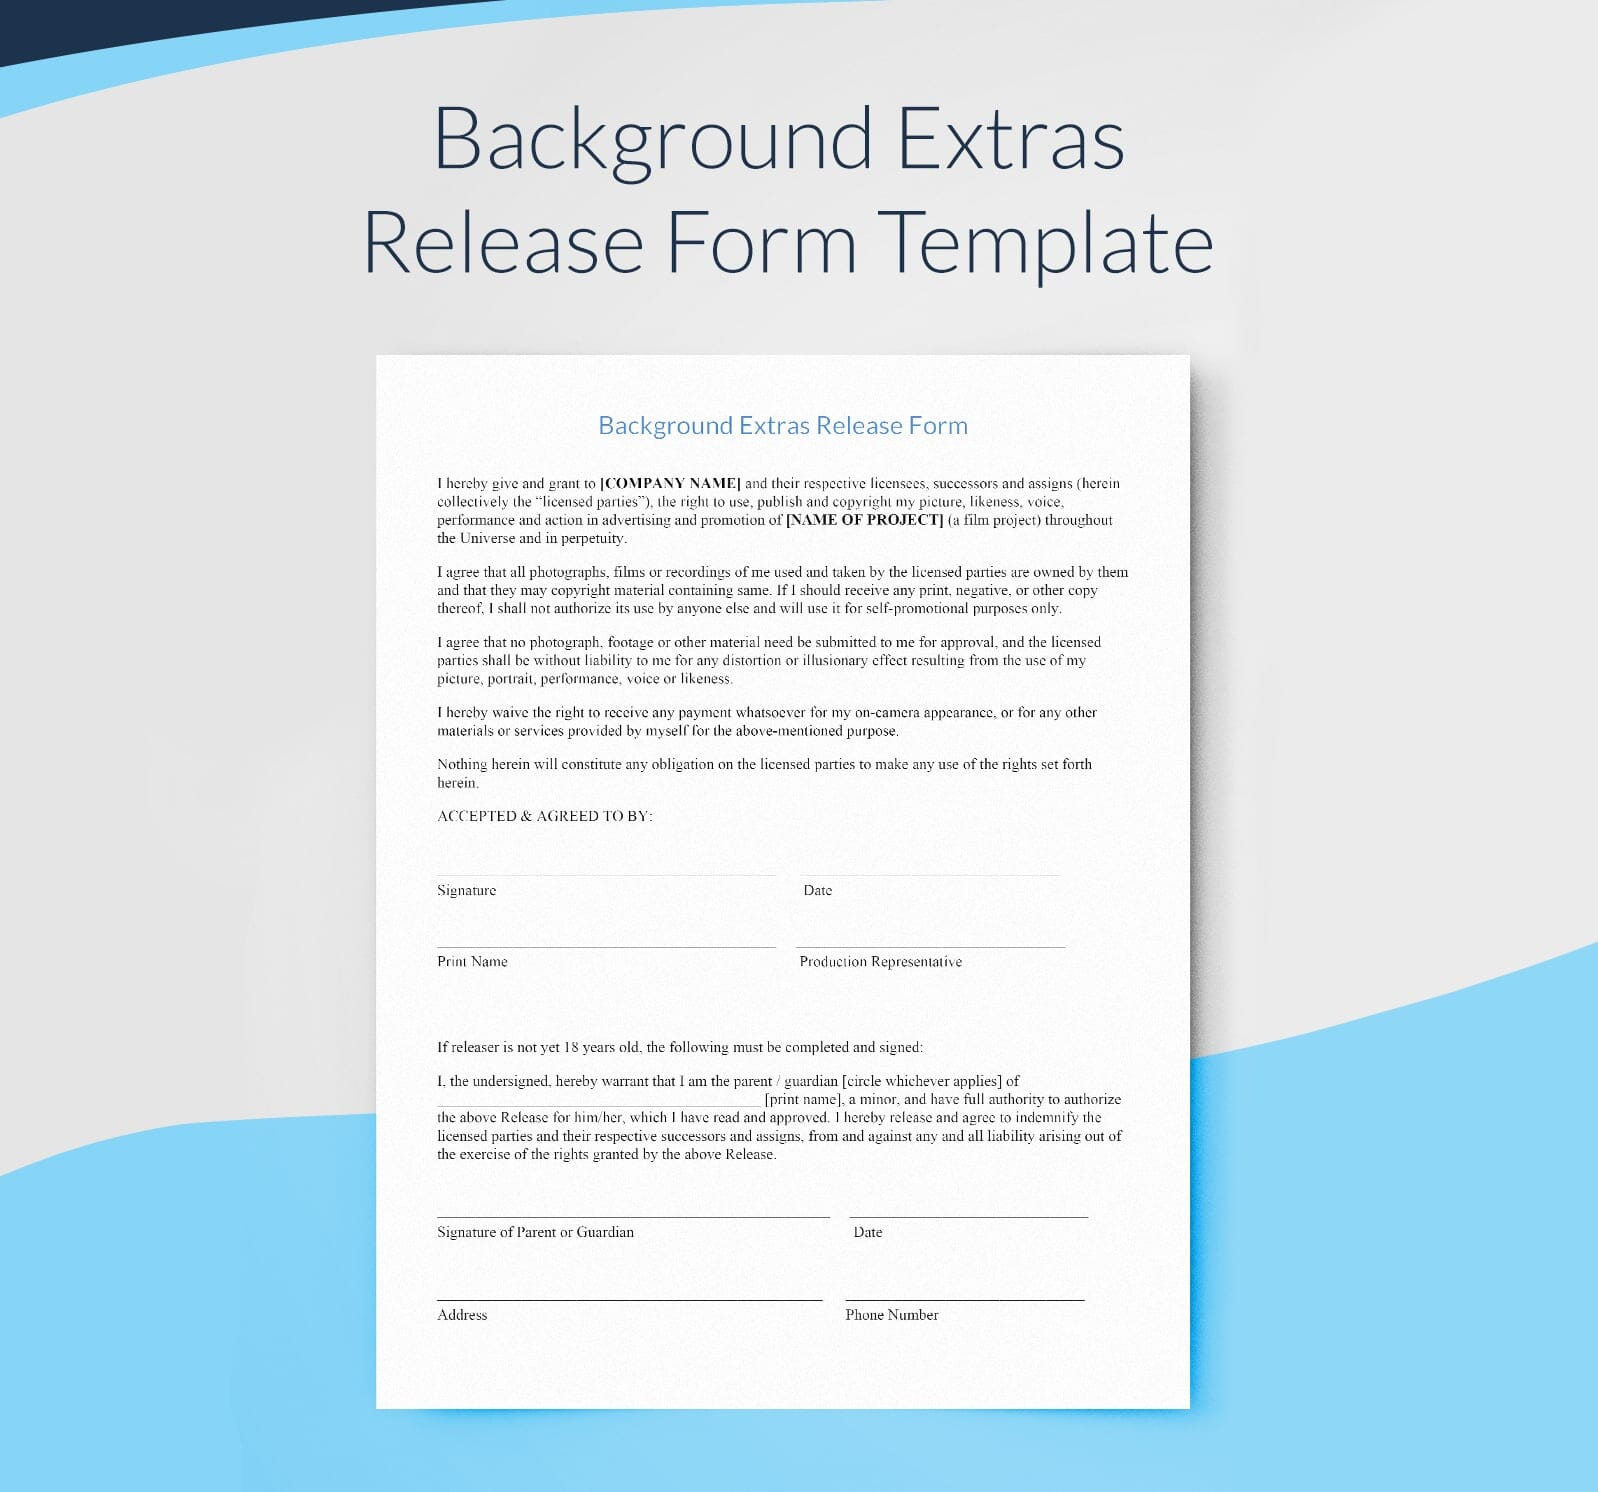 Background Extras Release Form - Free Filmmaking Template